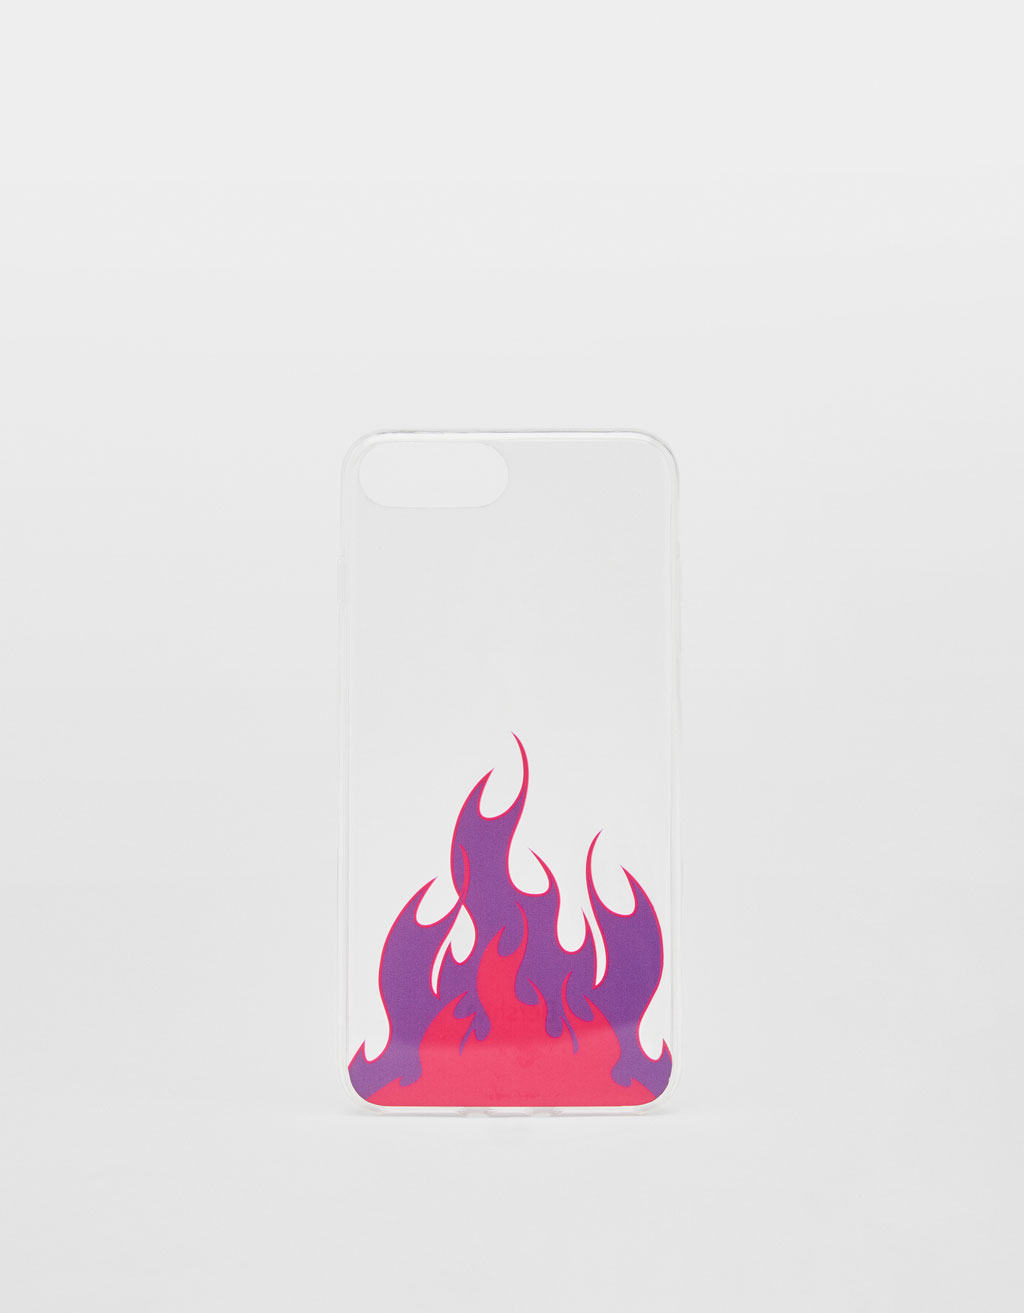 Handyhülle Flammen für iPhone 6 plus / 7 plus / 8 plus